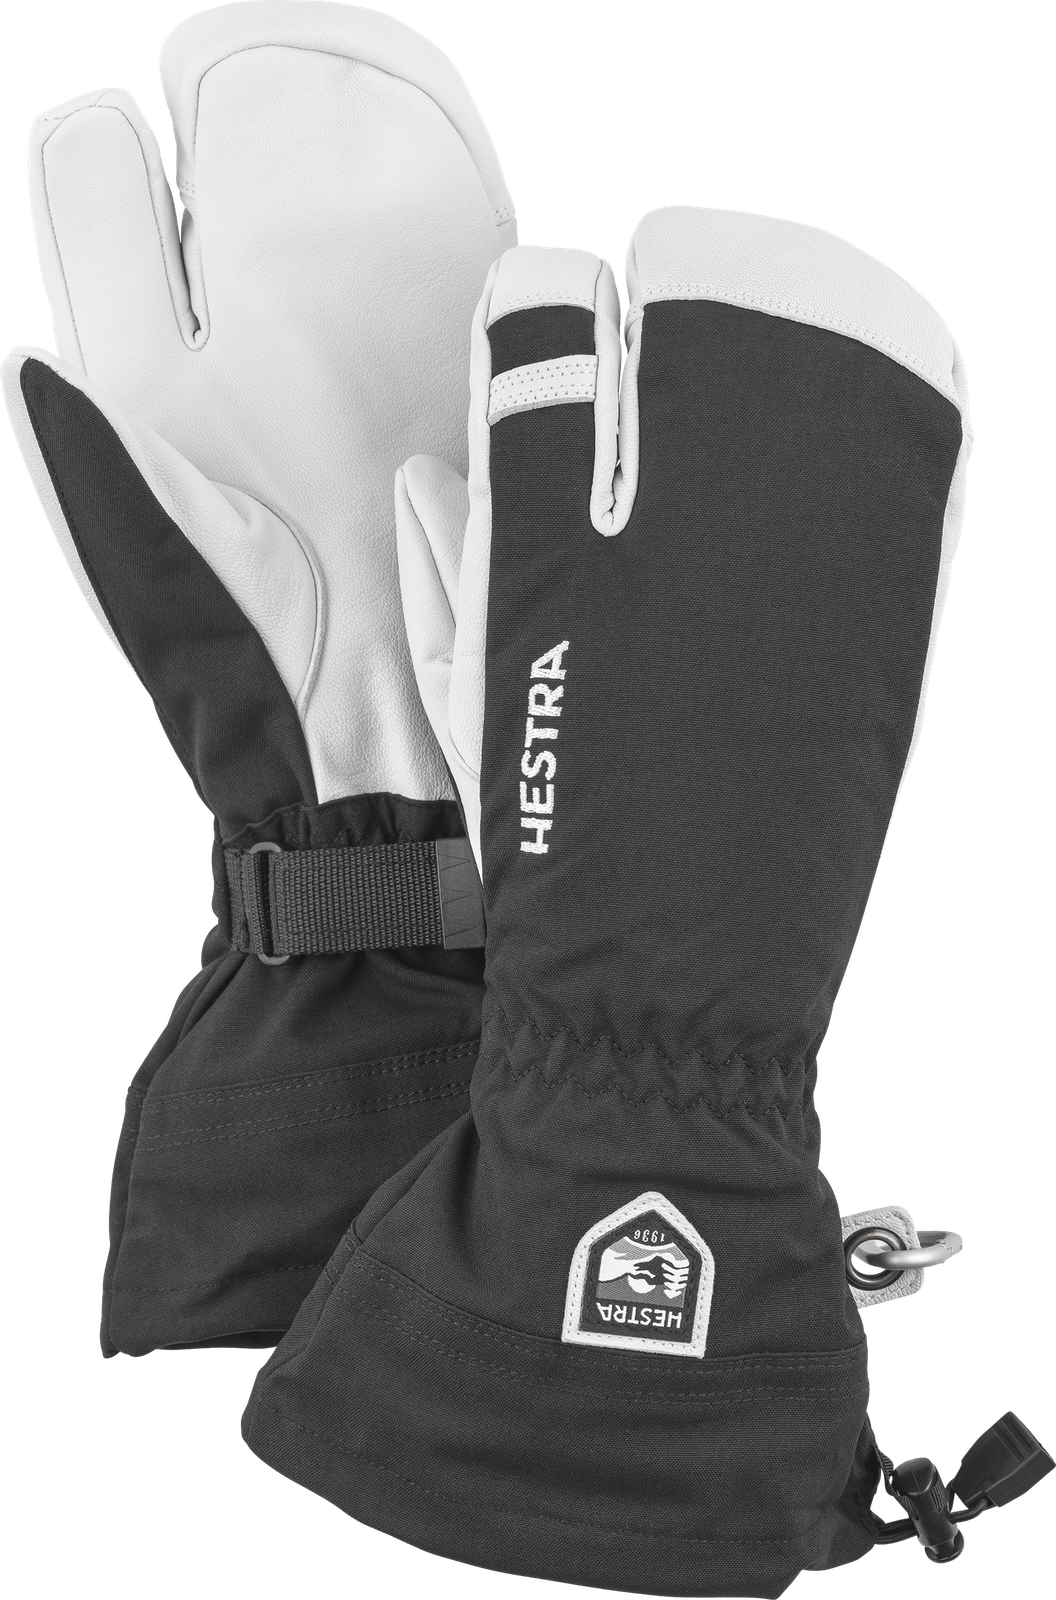 Hestra Hestra Army Leather Heli Ski 3-Finger Mitt